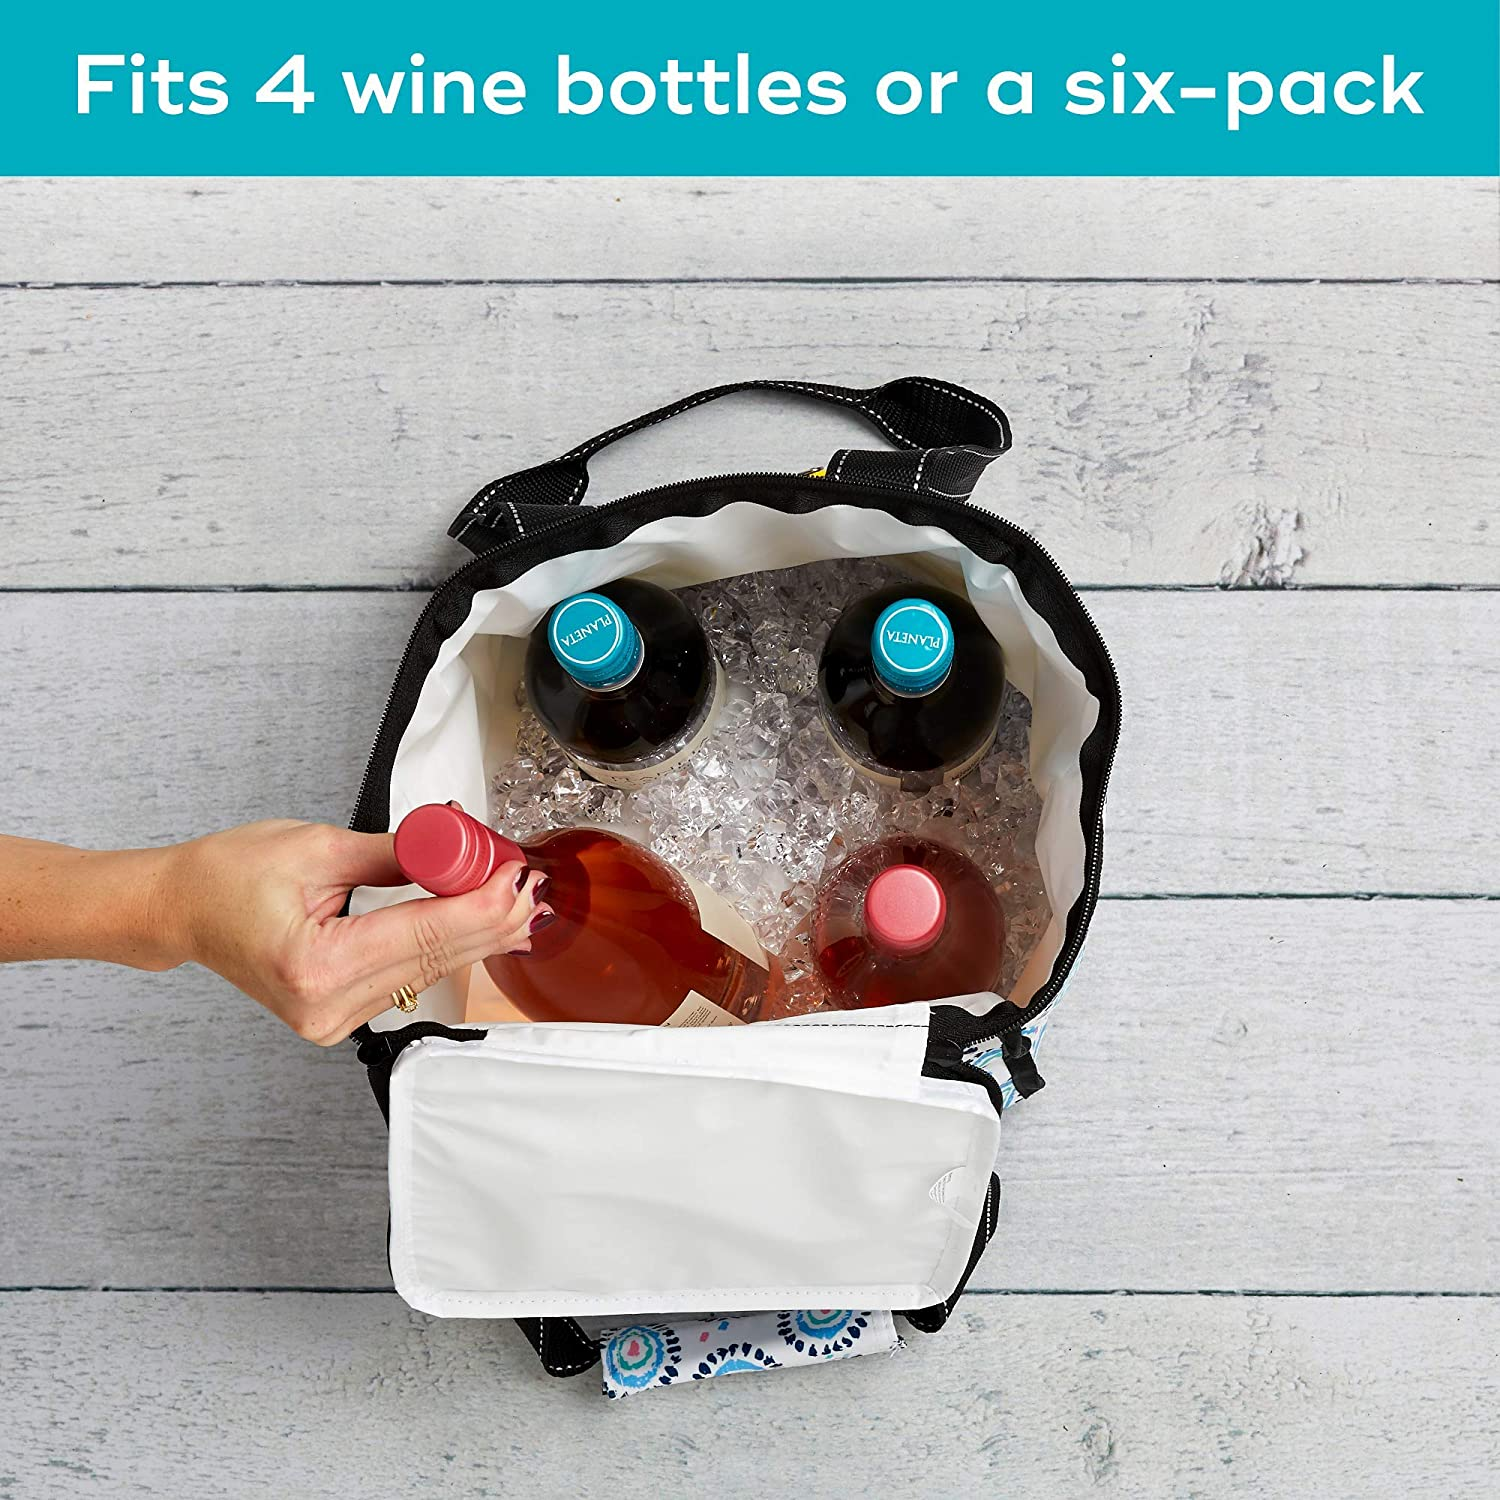 PVC-Free Liner SCOUT Pleasure Chest Insulated Soft Cooler Heat-Sealed Nantucket Navy Zips Closed Fits a 6 Pack or 4 Bottles of Wine Water Resistant 55205